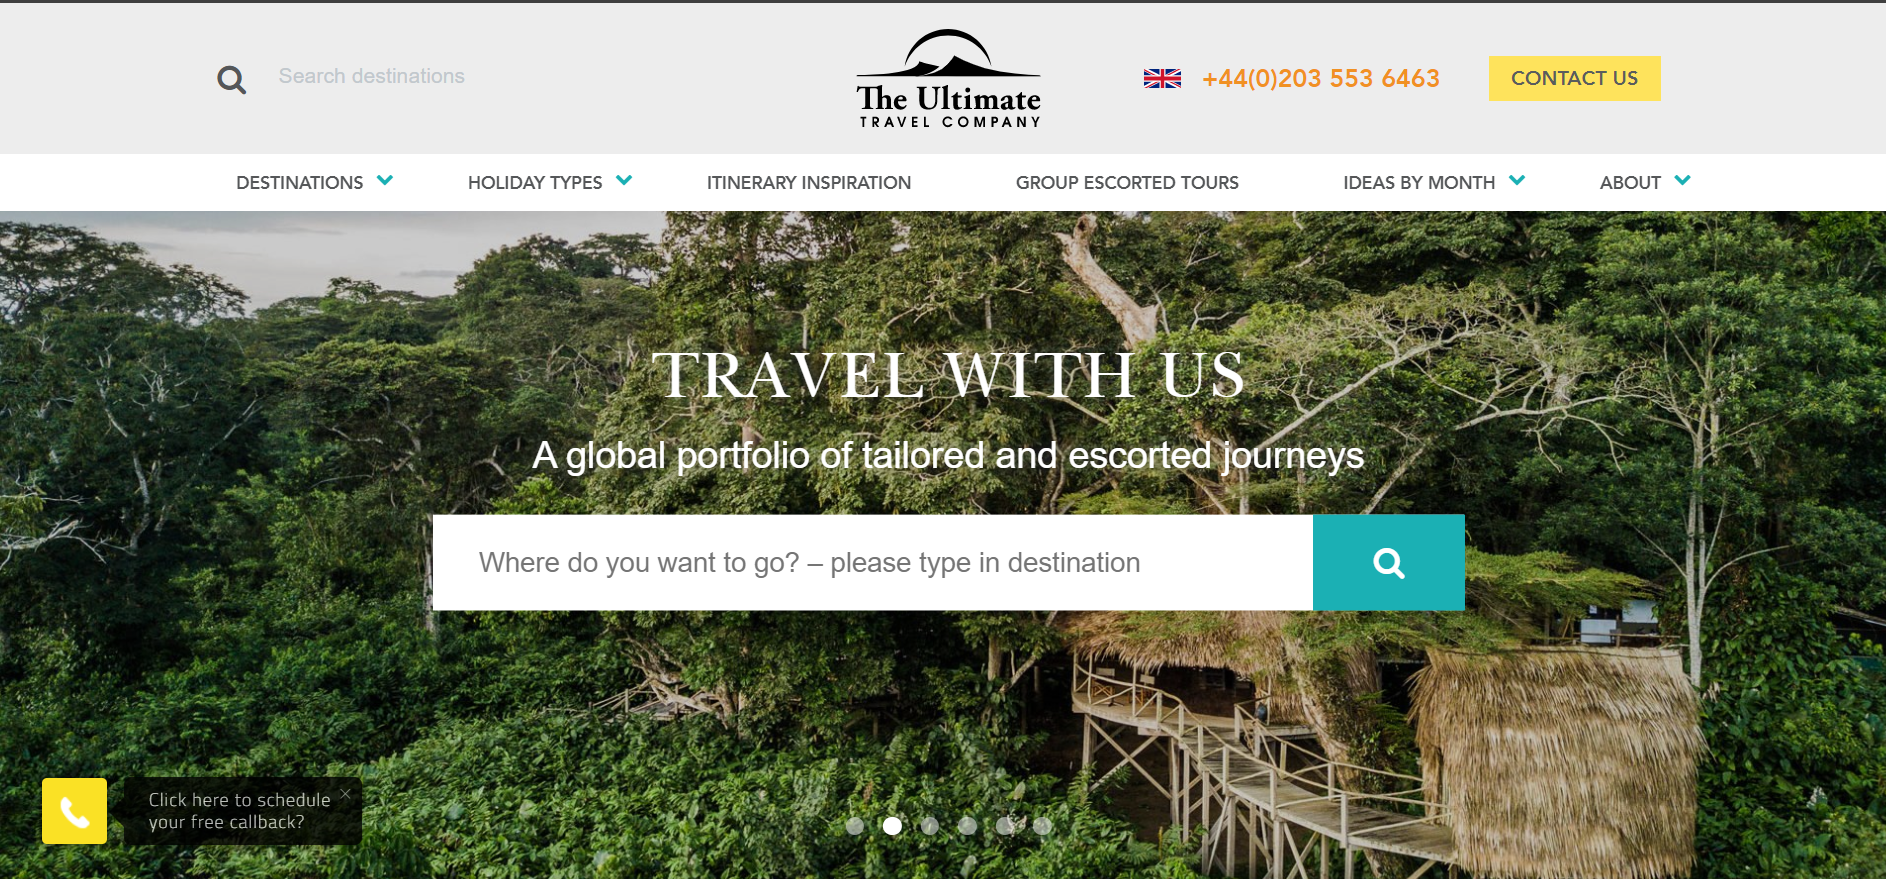 The Ultimate Travel Company Ltd.